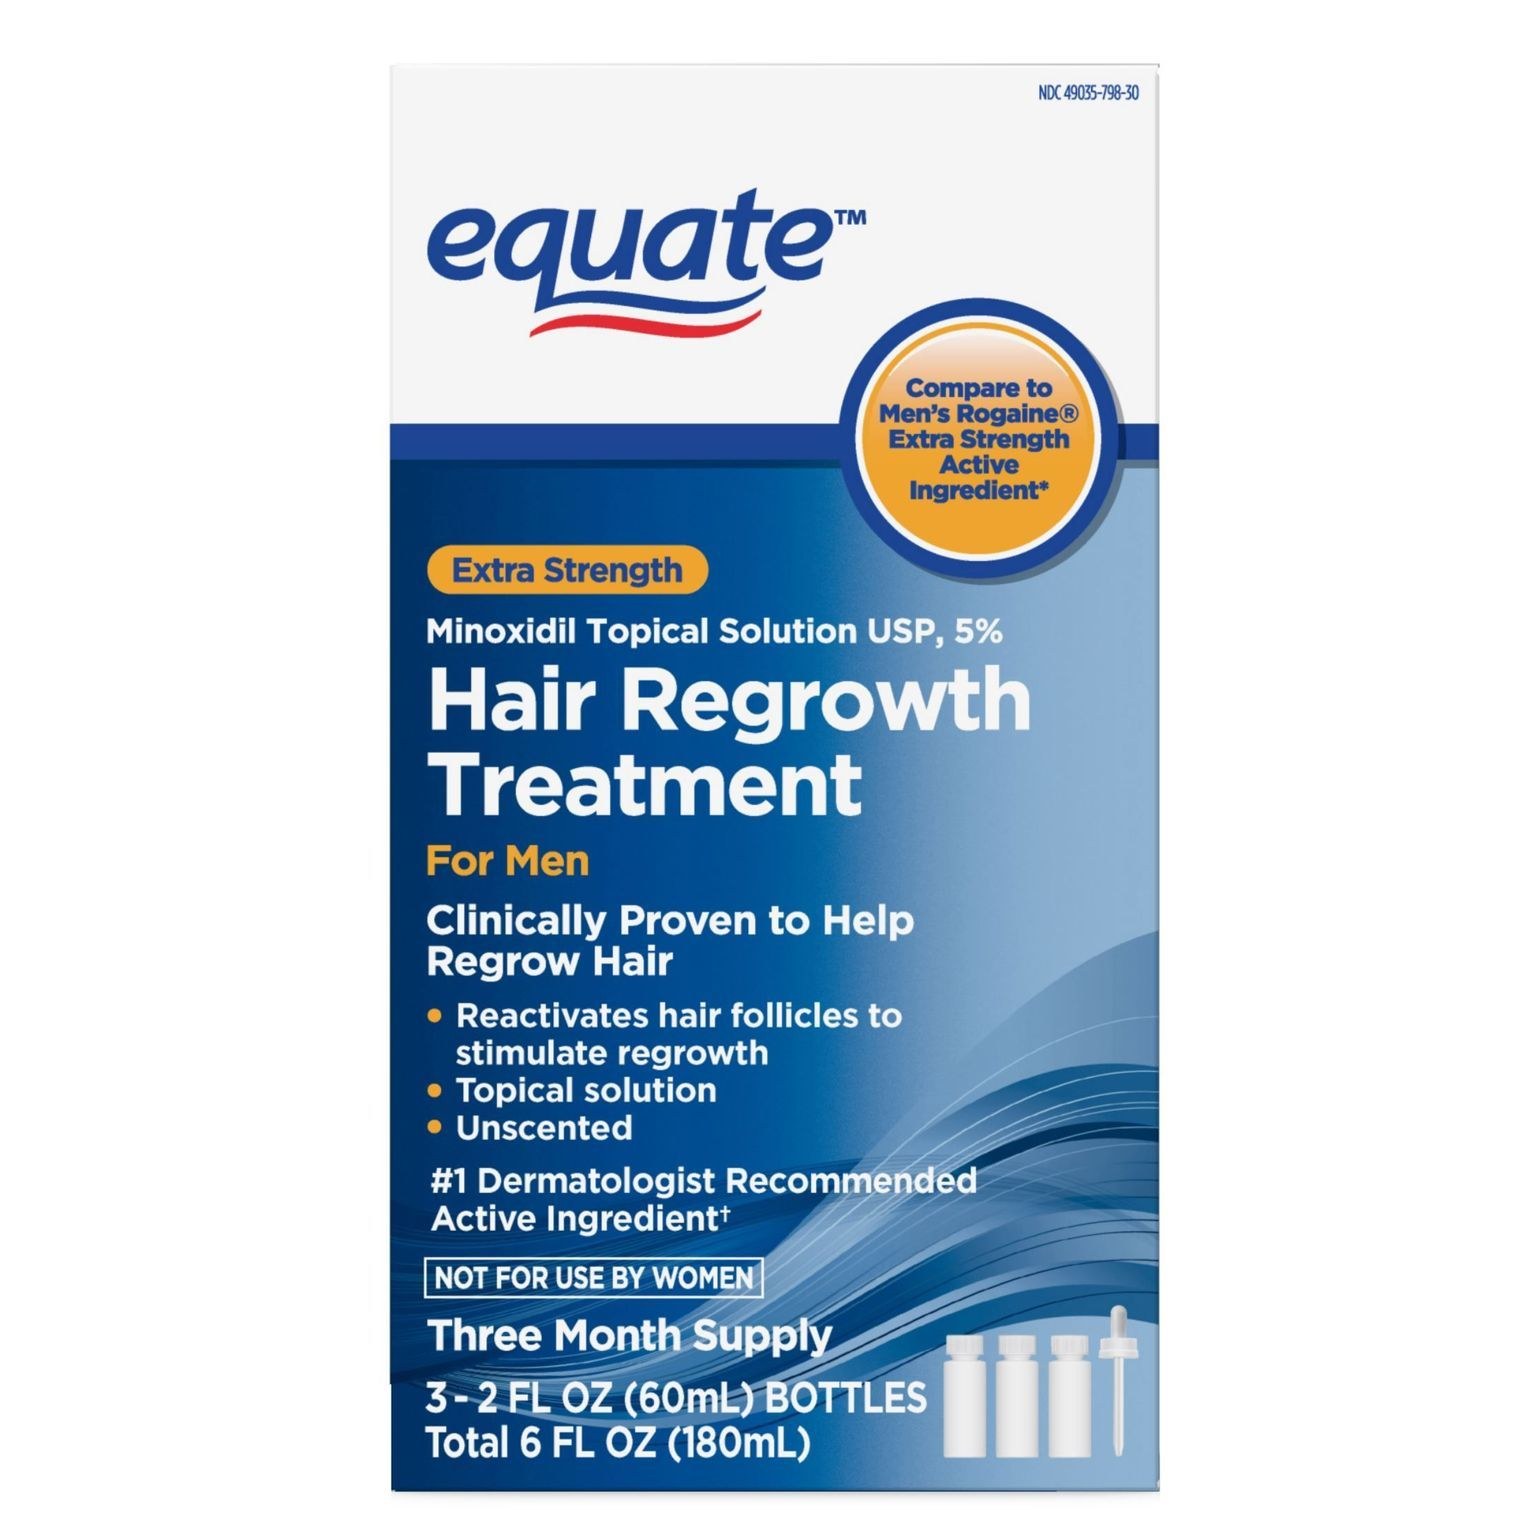 Minoxidil Topical Solution 5% Hair Regrowth Treatment